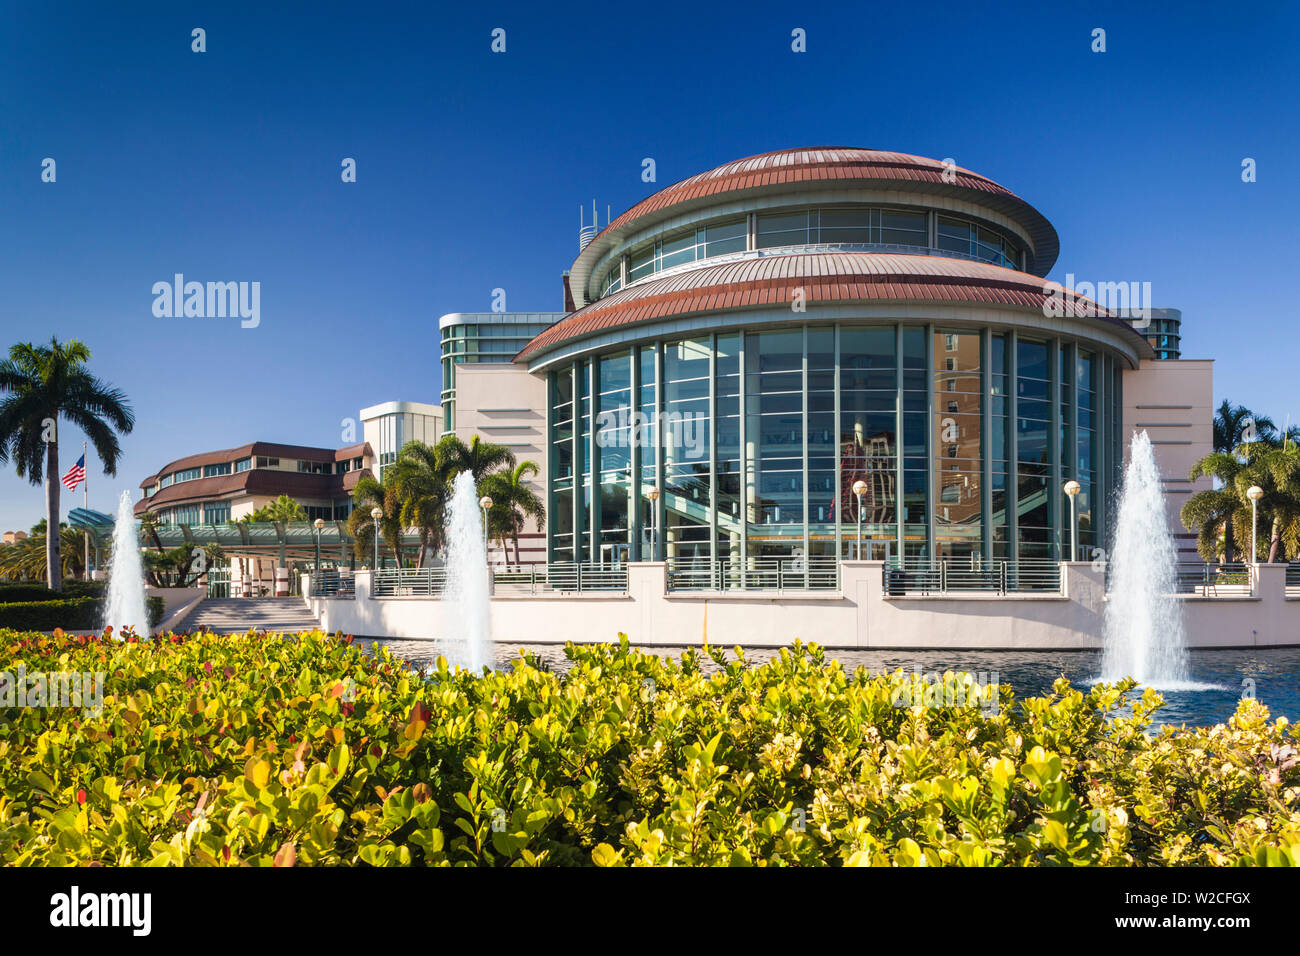 USA, Florida, West Palm Beach, Kravis Center for the Performing Arts - Stock Image